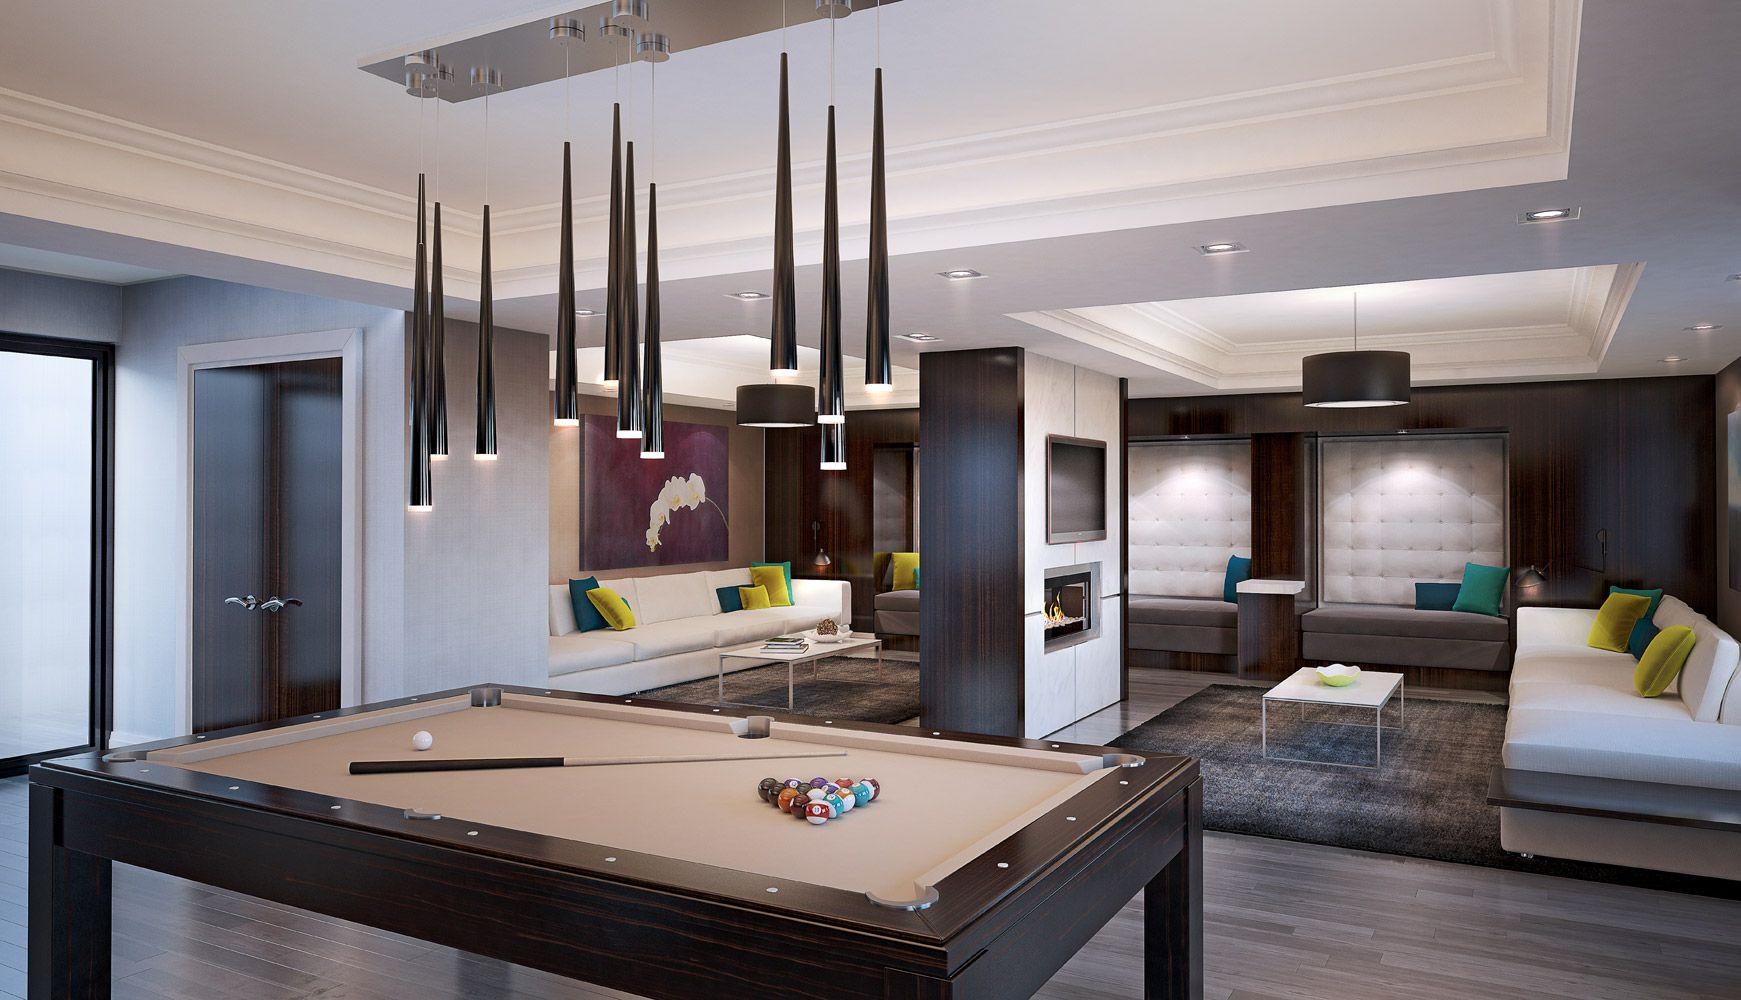 Experience luxury condo lifestyle at Pace on Main in Stouffville.  #luxurycondo #luxurycondostouffville  http://bit.ly/paceon12